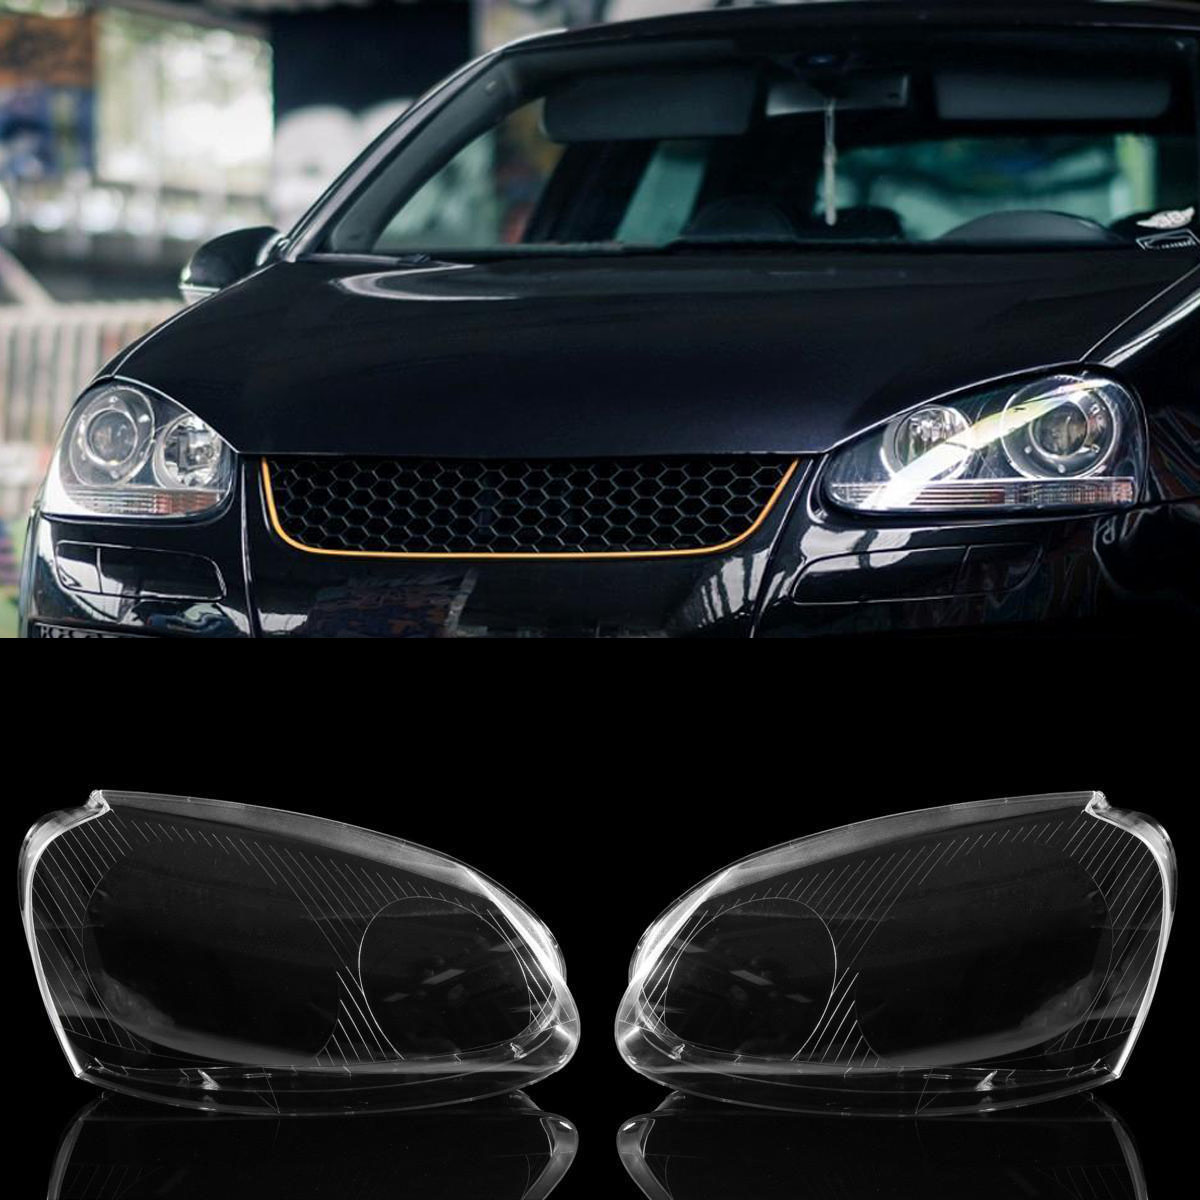 JX-LCLYL 1pair Headlight Clear Lens Cover For VW MK5 Rabbit Jetta GTI 06-09 R32 08